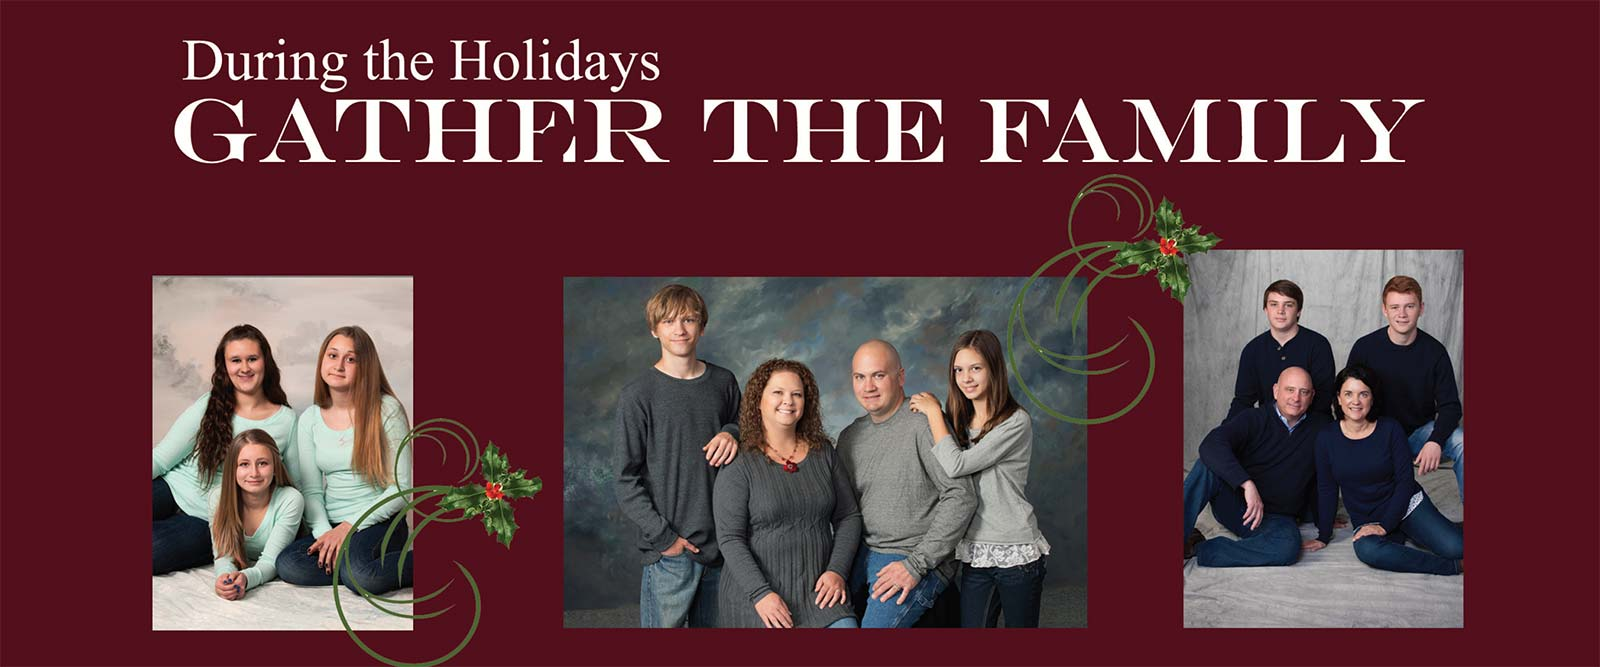 Gather the Family-For the holidays